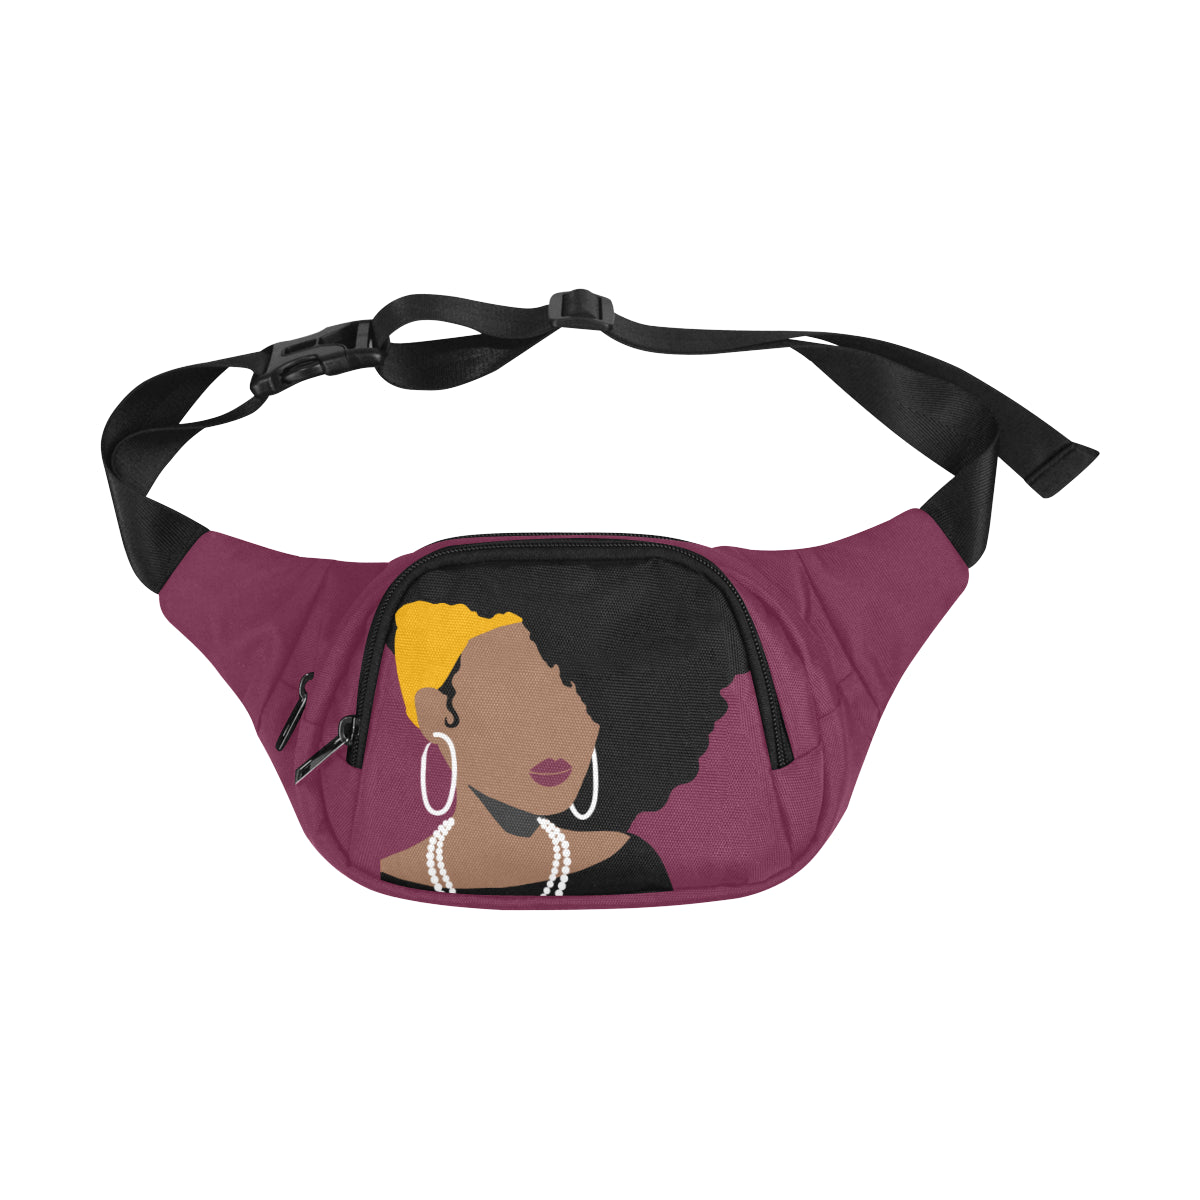 Bougie - Mary 1904 Fanny Pack